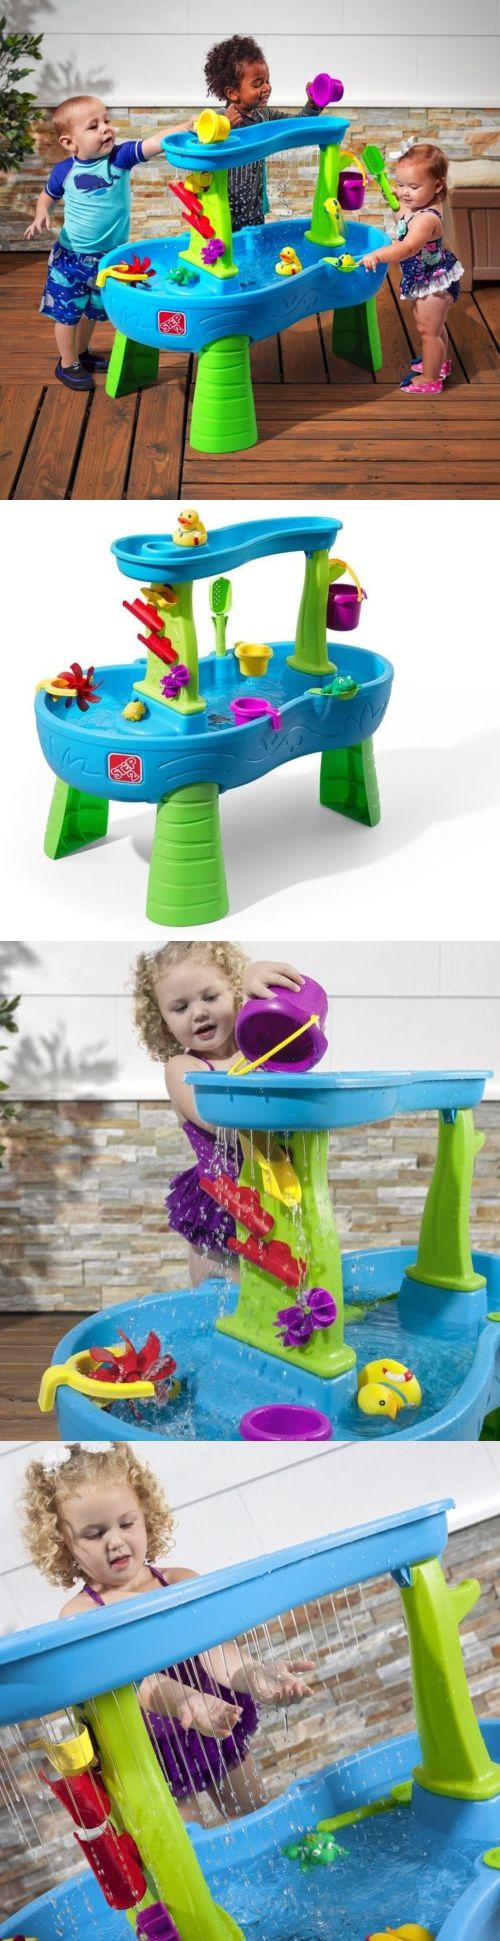 Step 2 52344: Splash Pond Water Play Toy Kid Child Colorful Table Paddle Bucket Rainfall Sound -> BUY IT NOW ONLY: $87.08 on eBay!